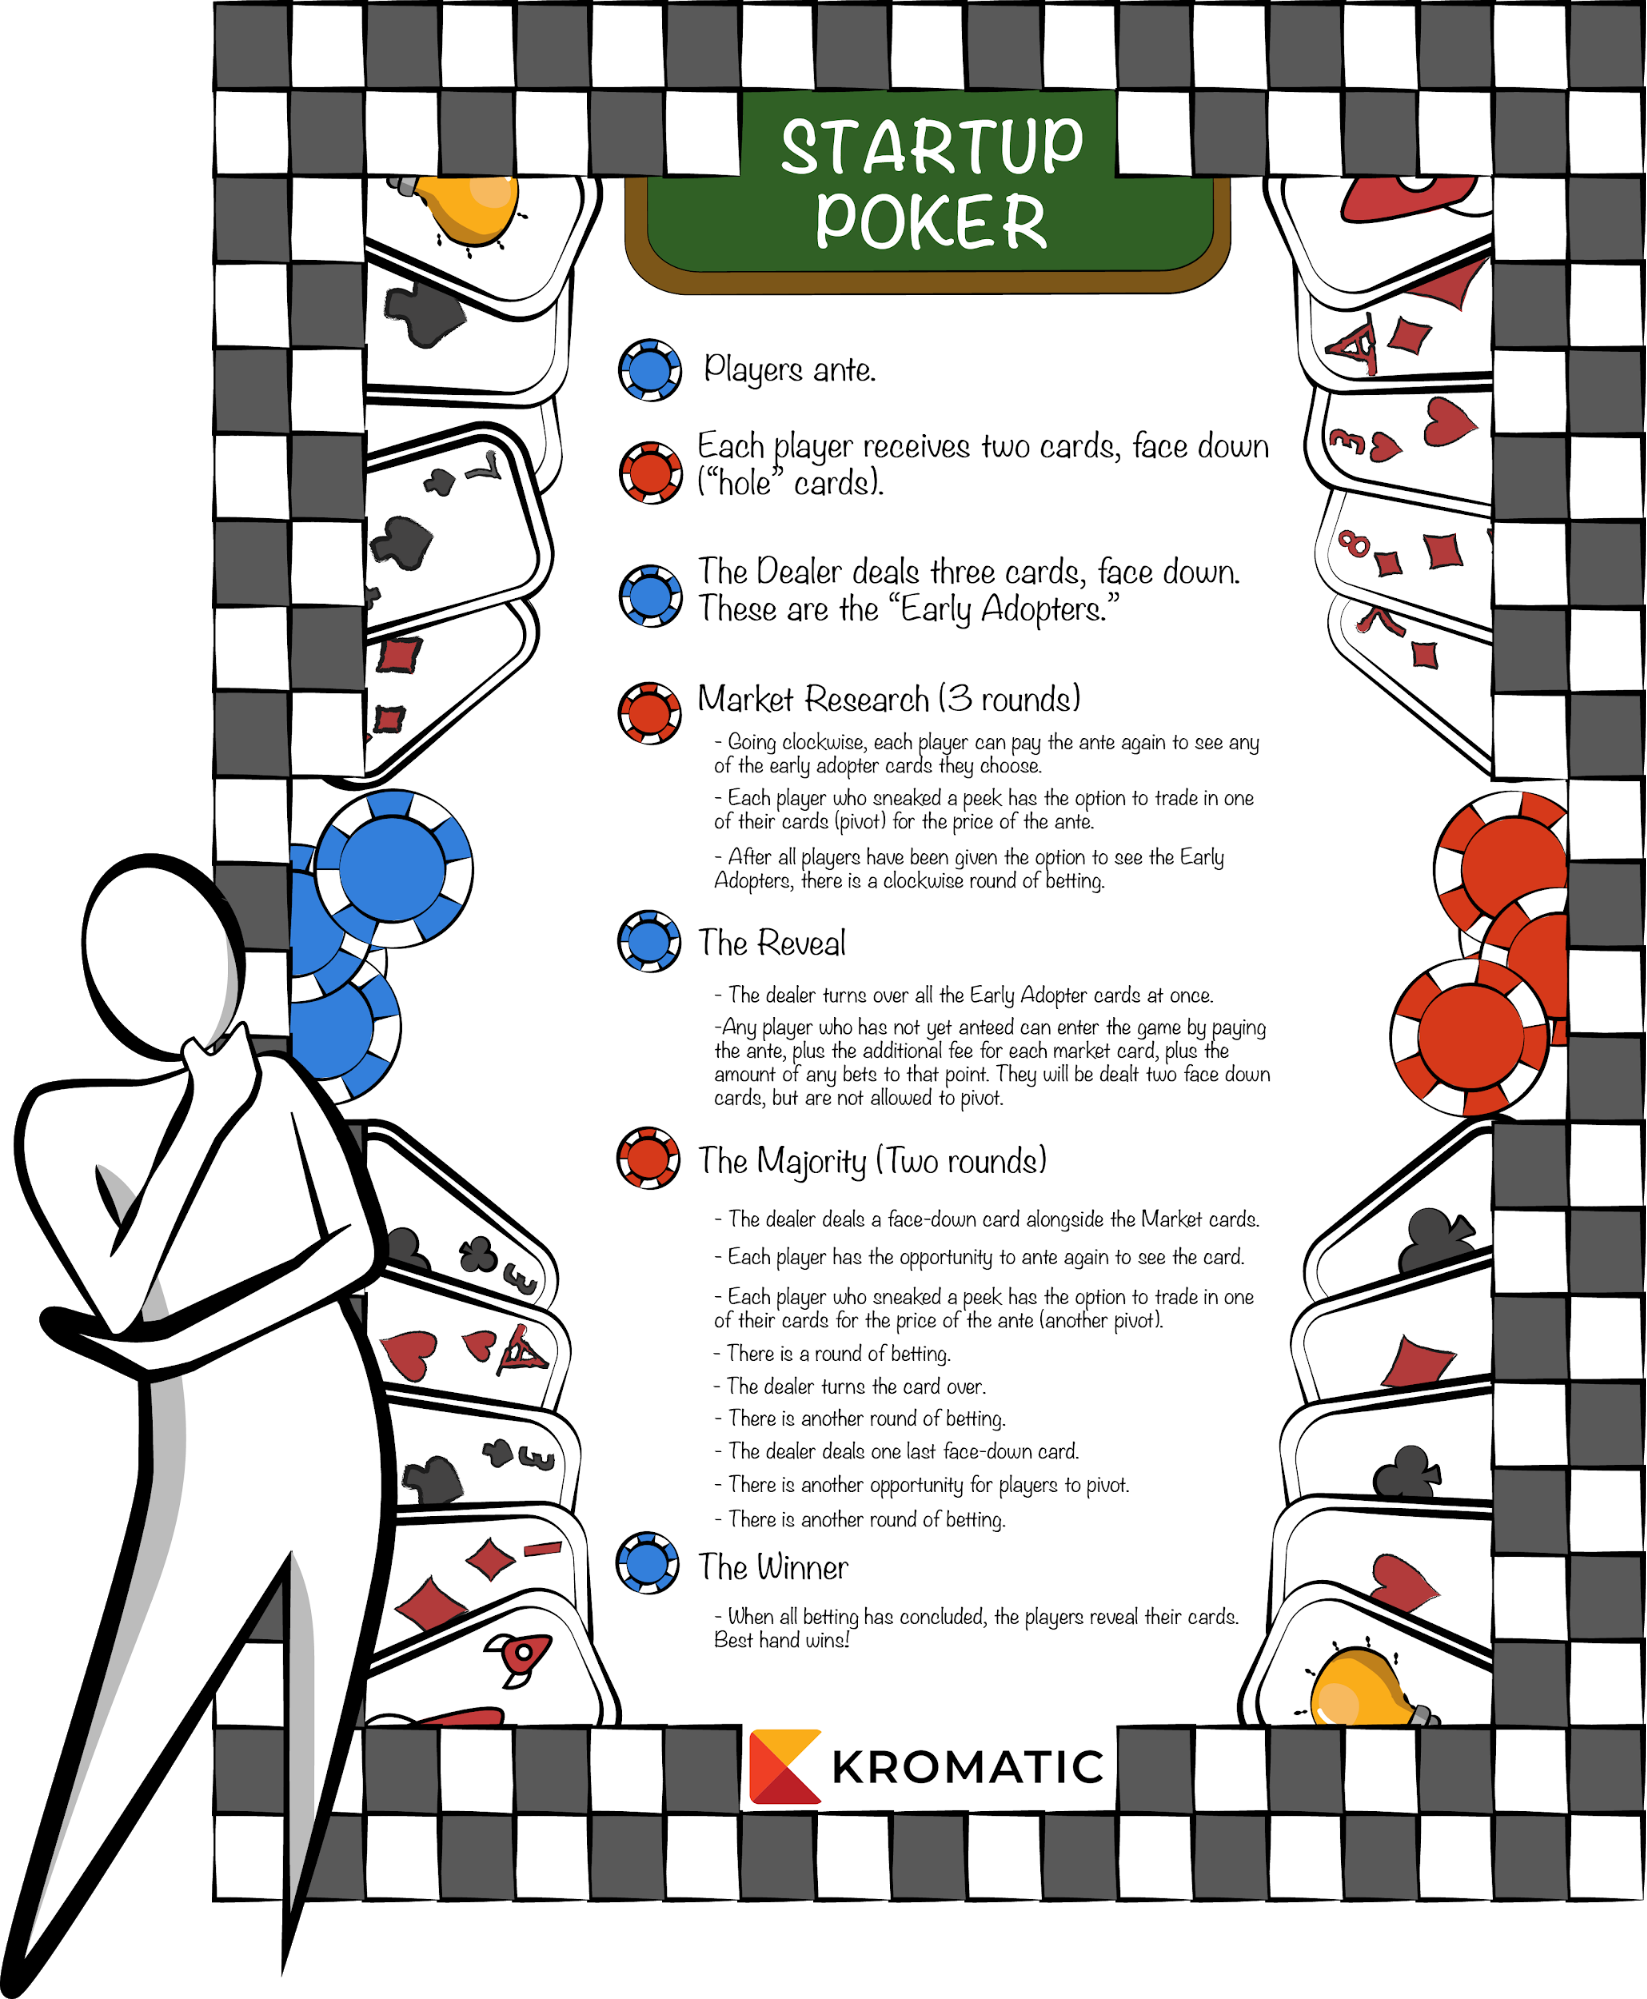 How To Win At Startup Poker Kromatic Blog